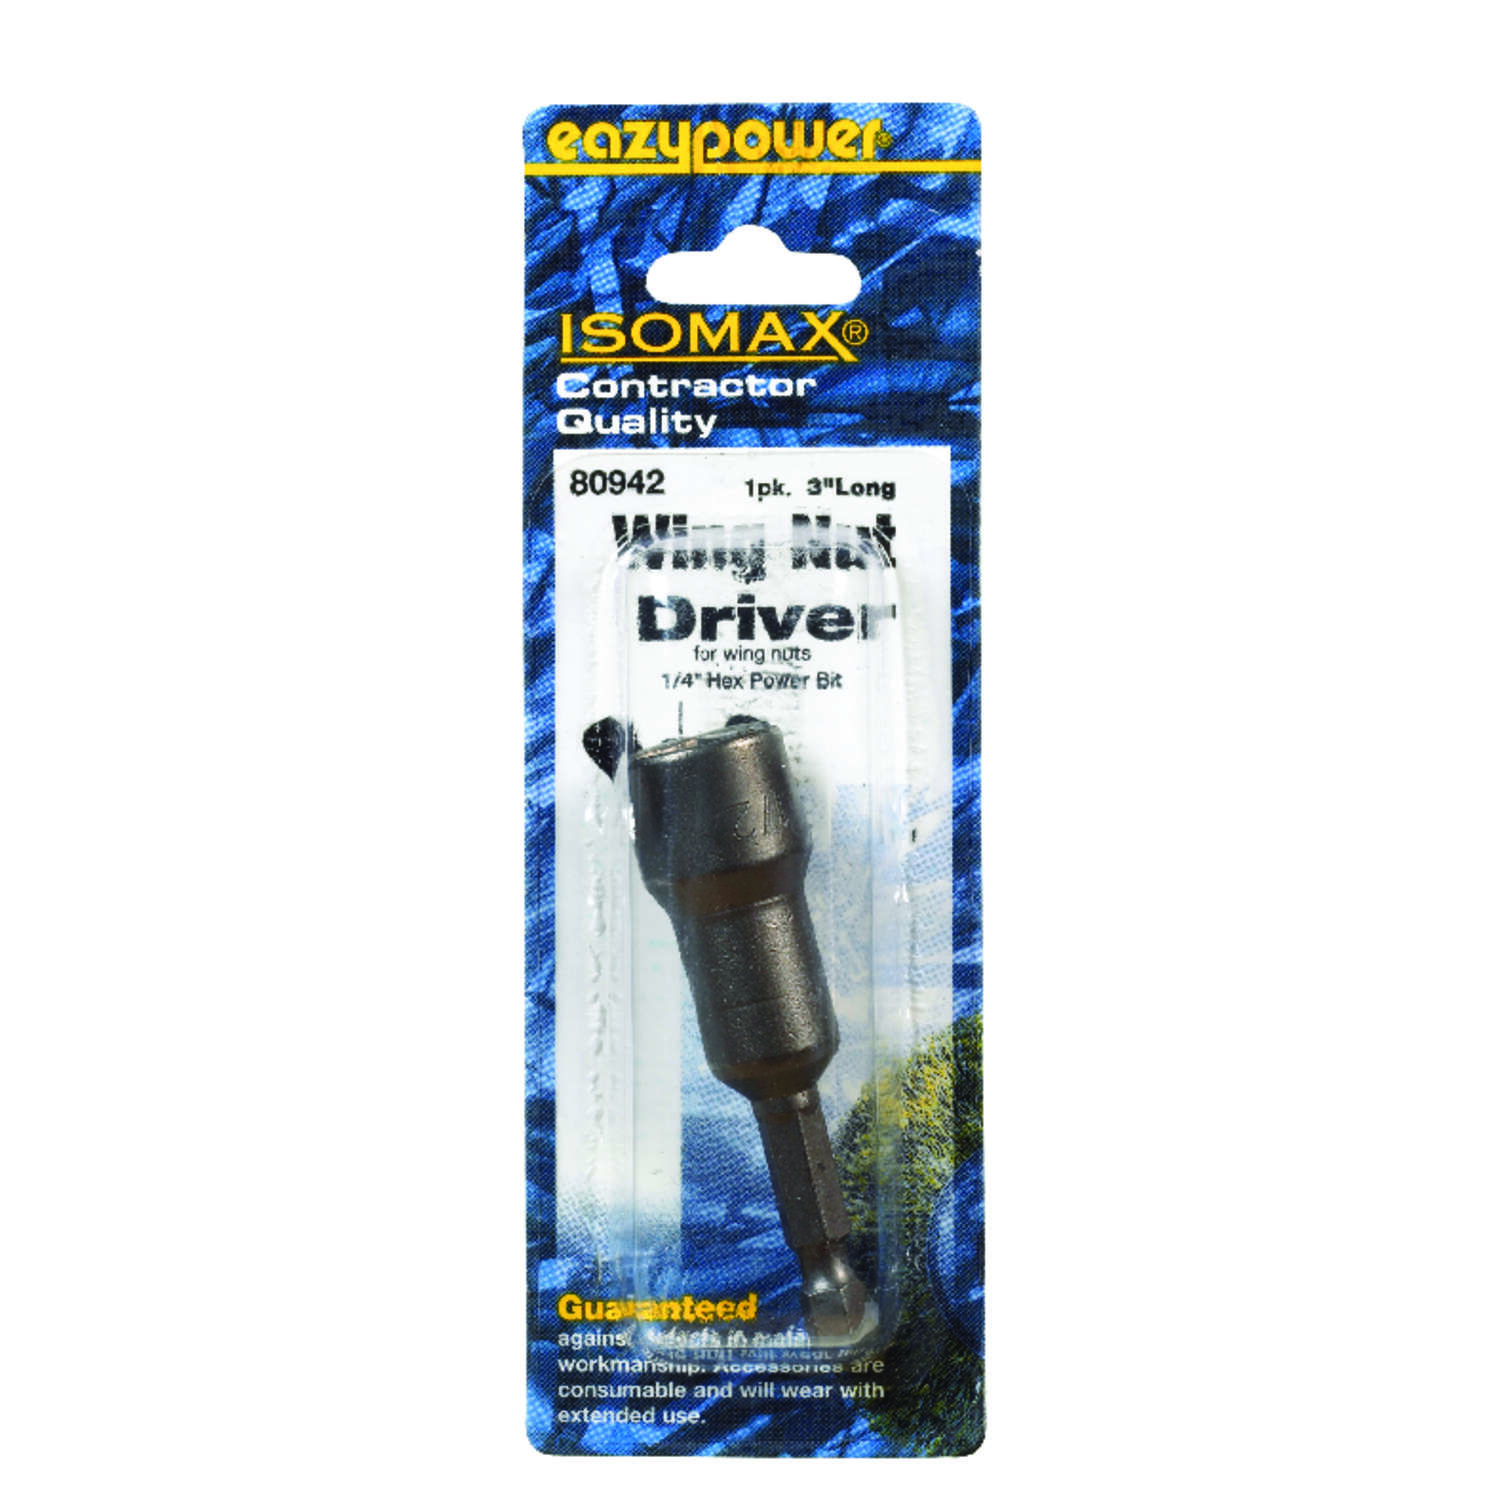 Eazypower  Isomax  1/4 in. Steel  SAE  Wing Nut Driver  1 pk